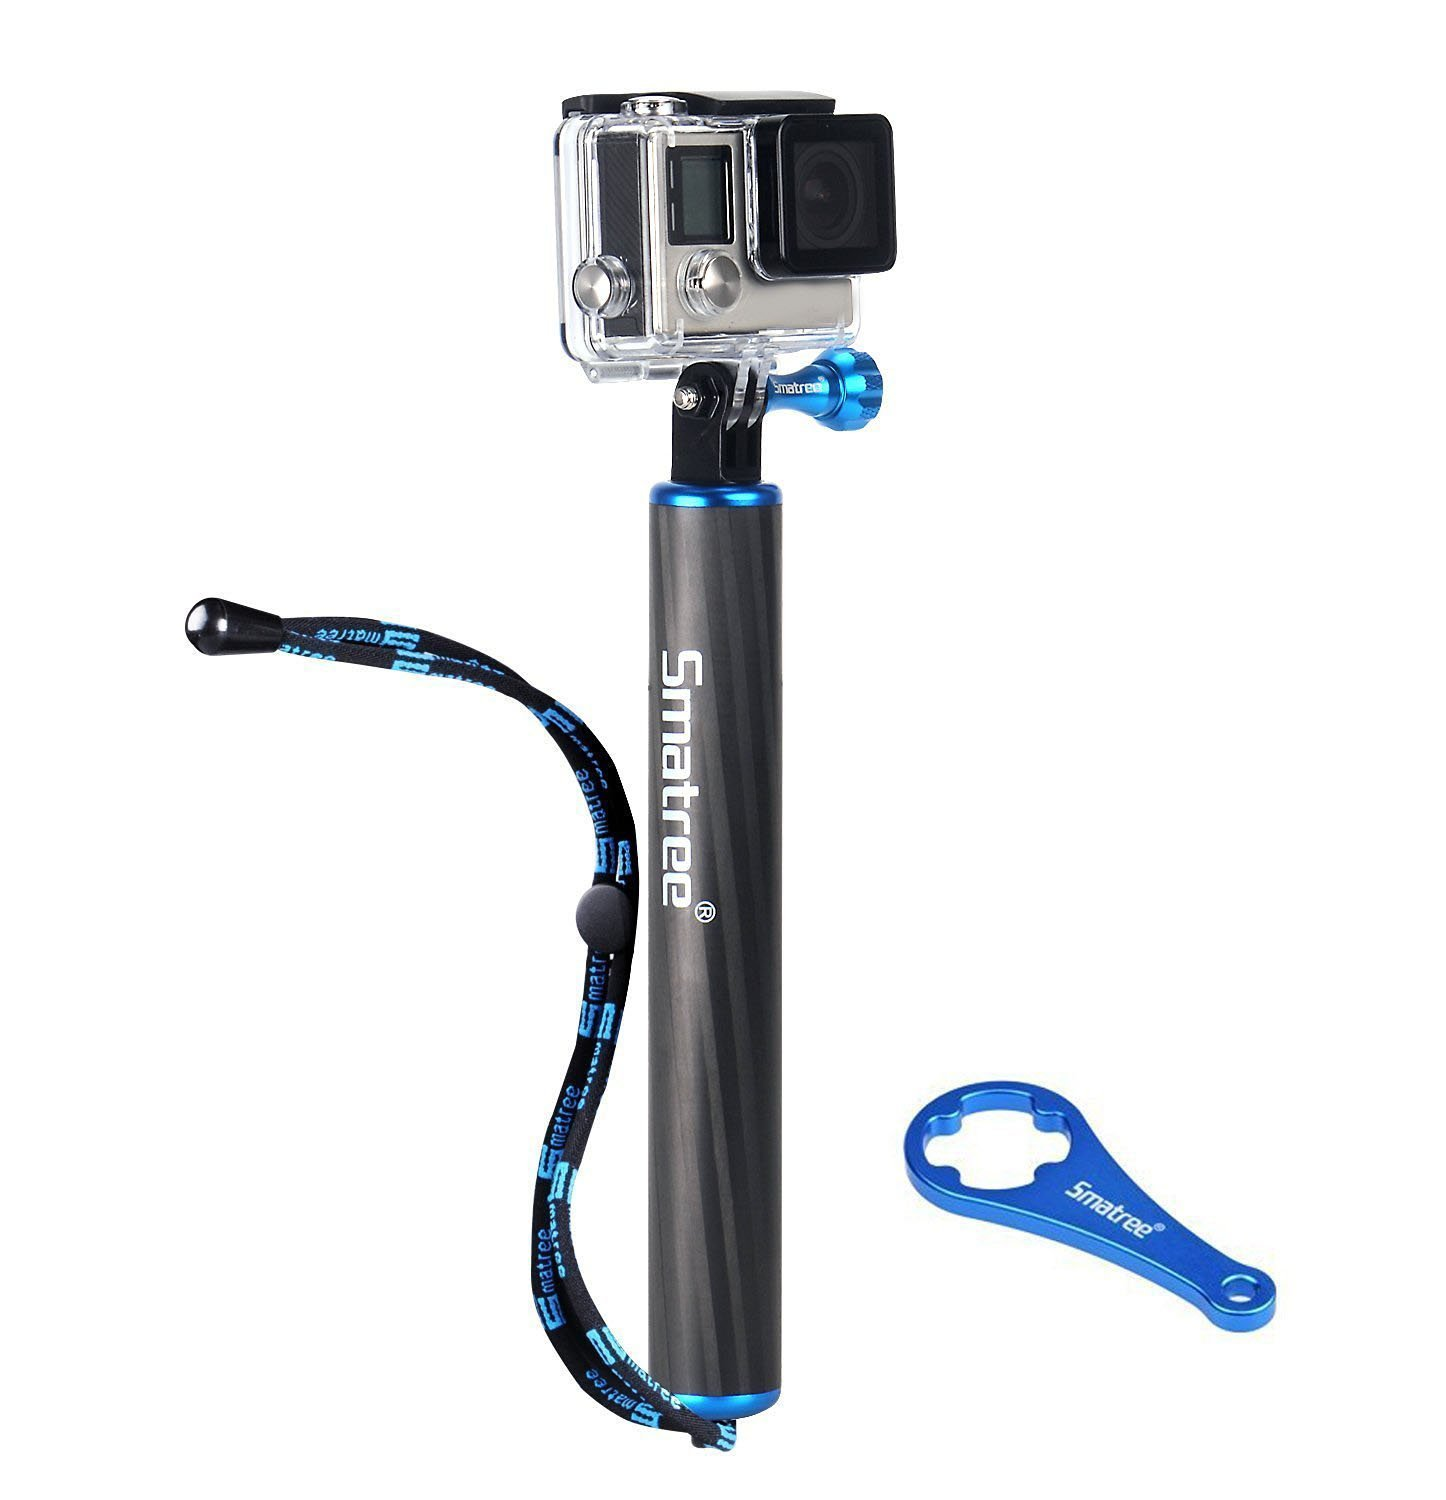 Smatree F1 for GoPro Hero 6/5/4/3+/3/Session/Action Cameras,Waterproof Floating Carbon Fiber Hand Grip